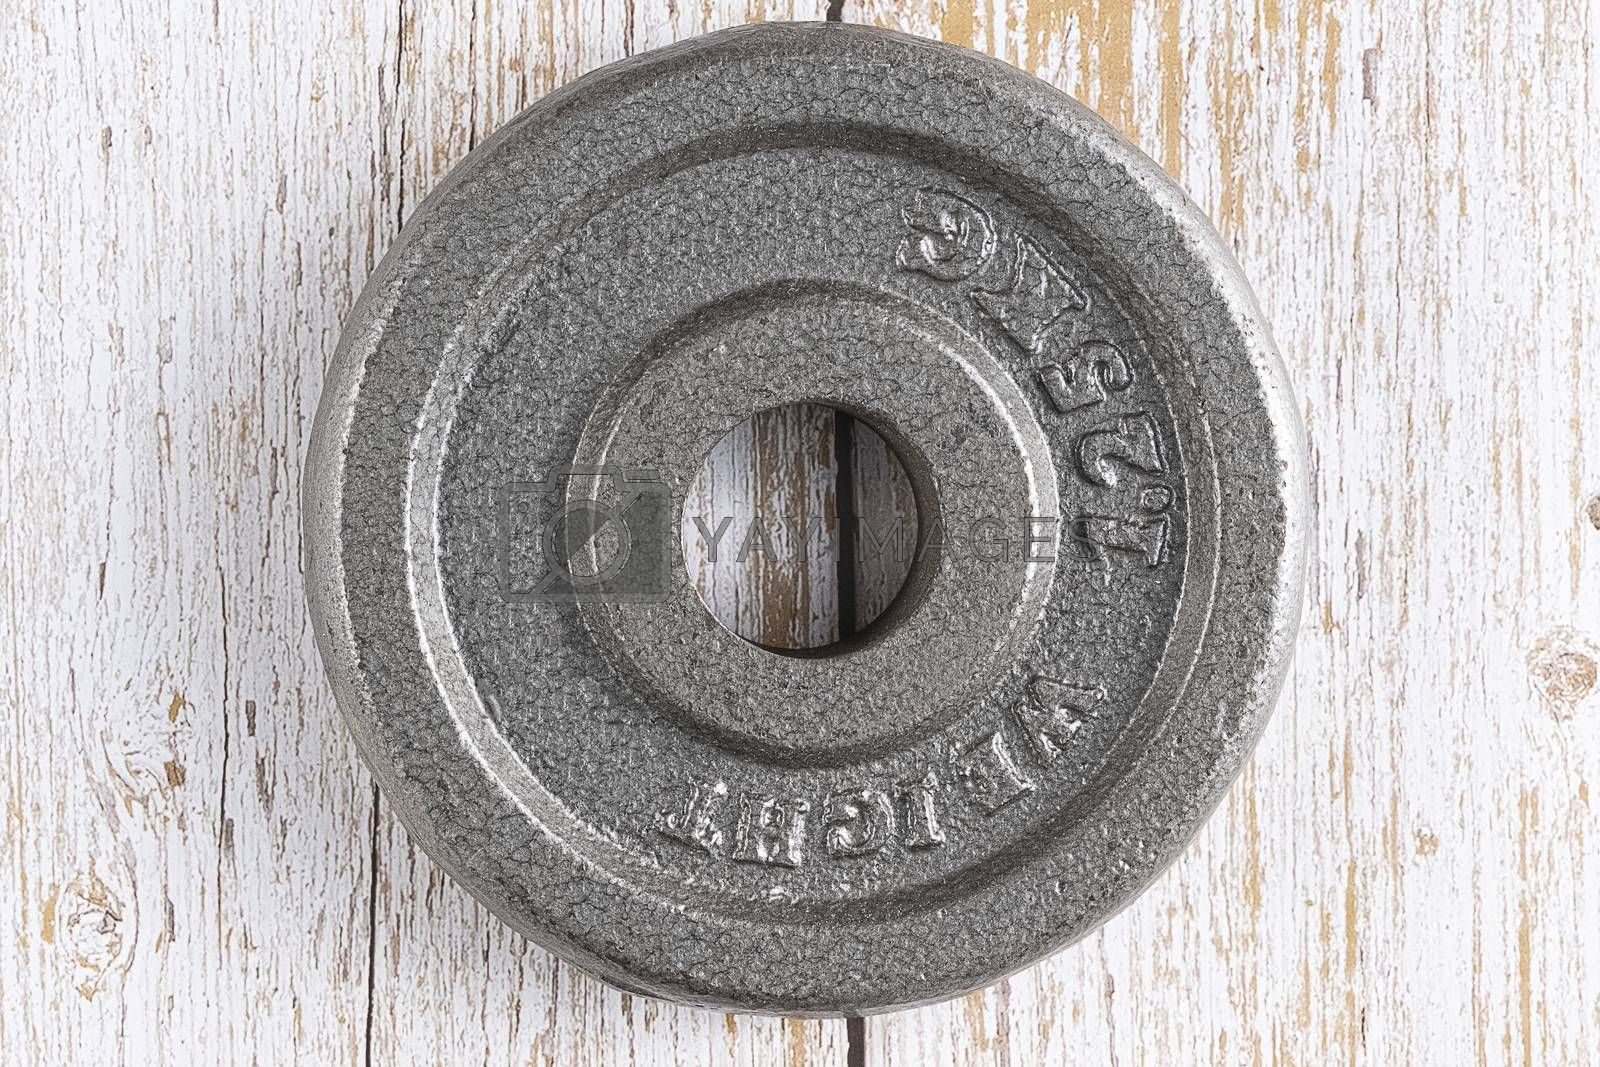 A weight plate by Nawoot